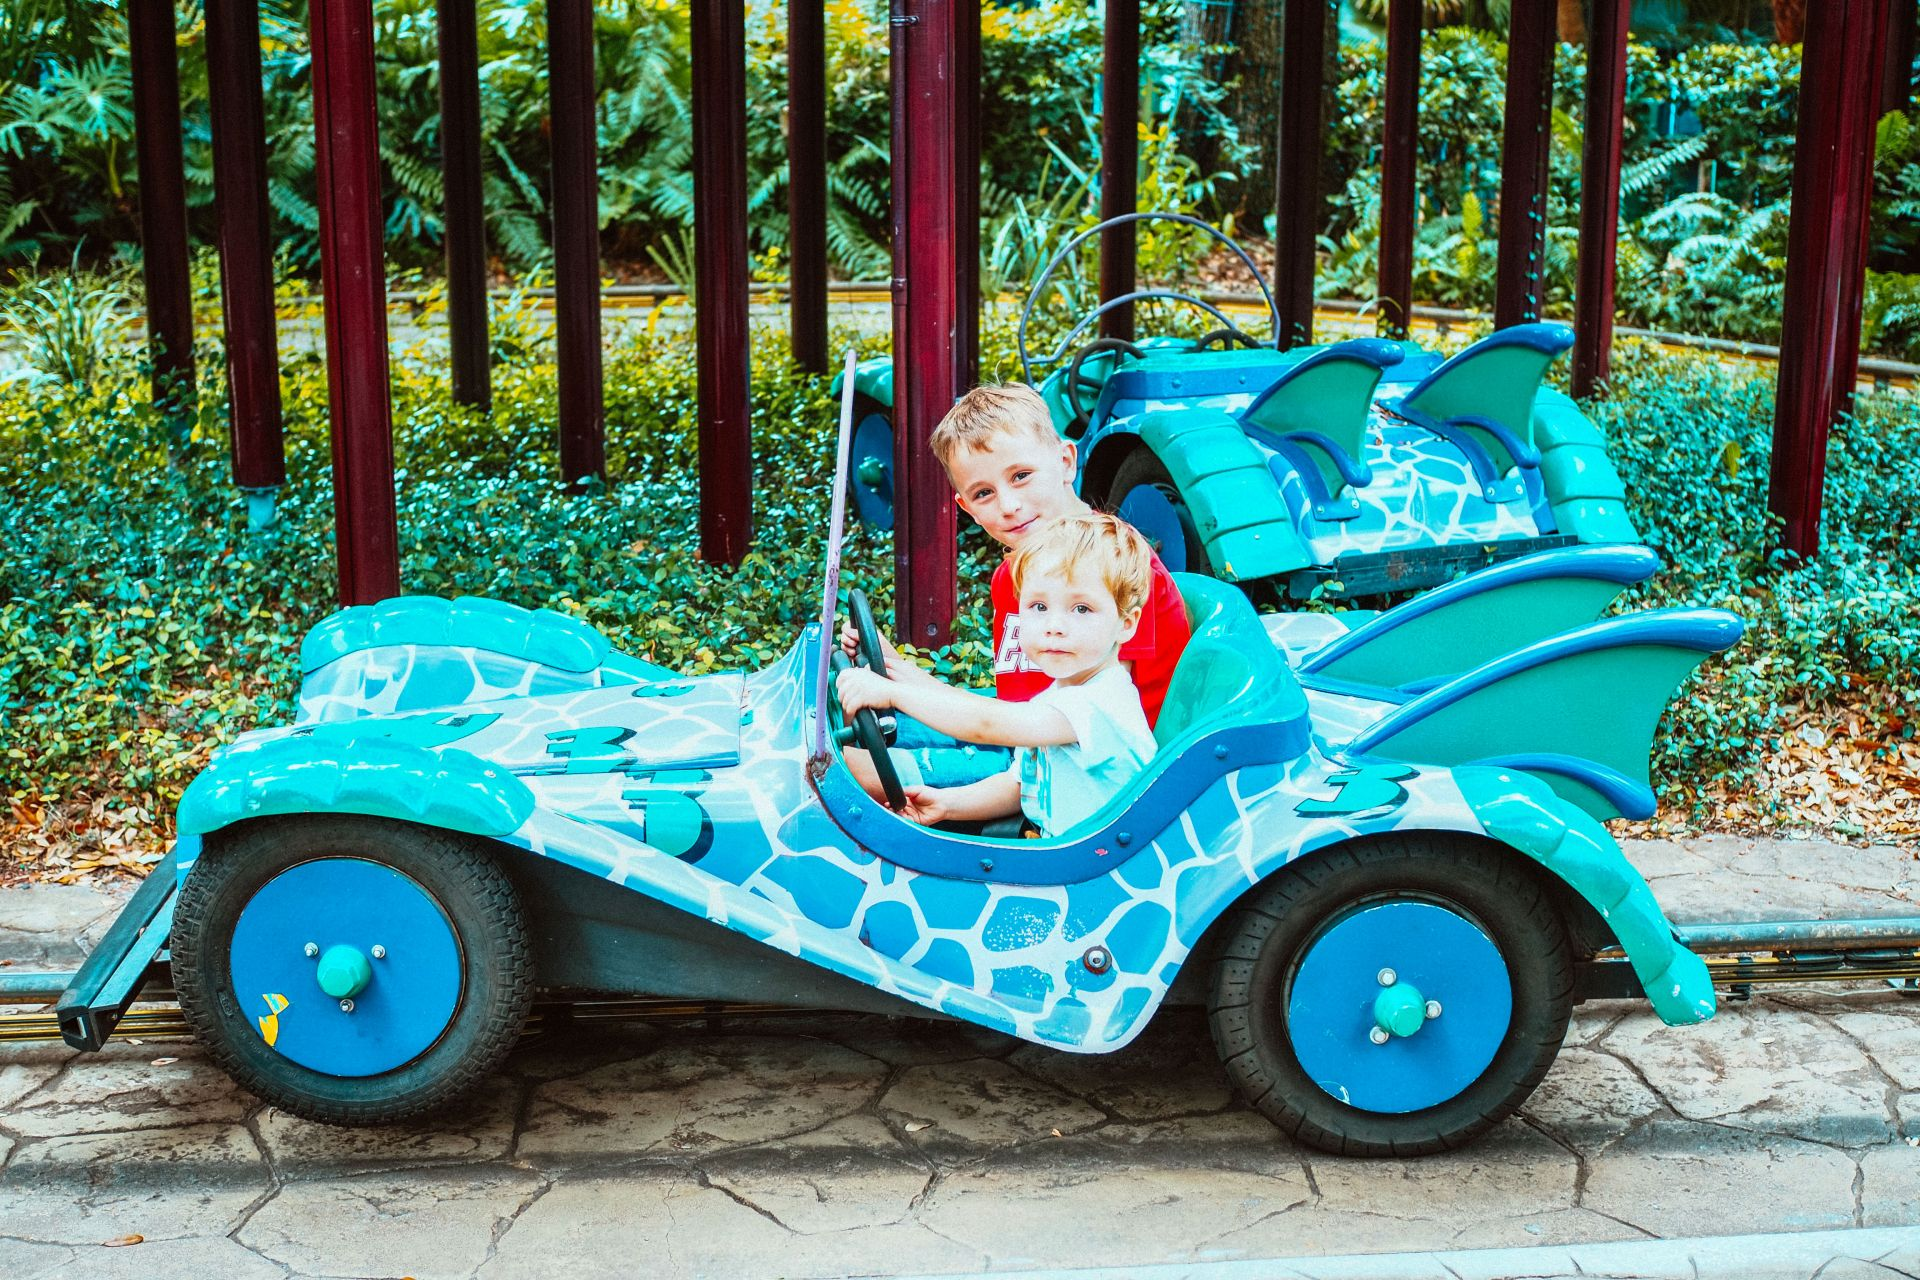 Busch Gardens - One You Won't Want To Miss If You're Visiting Florida